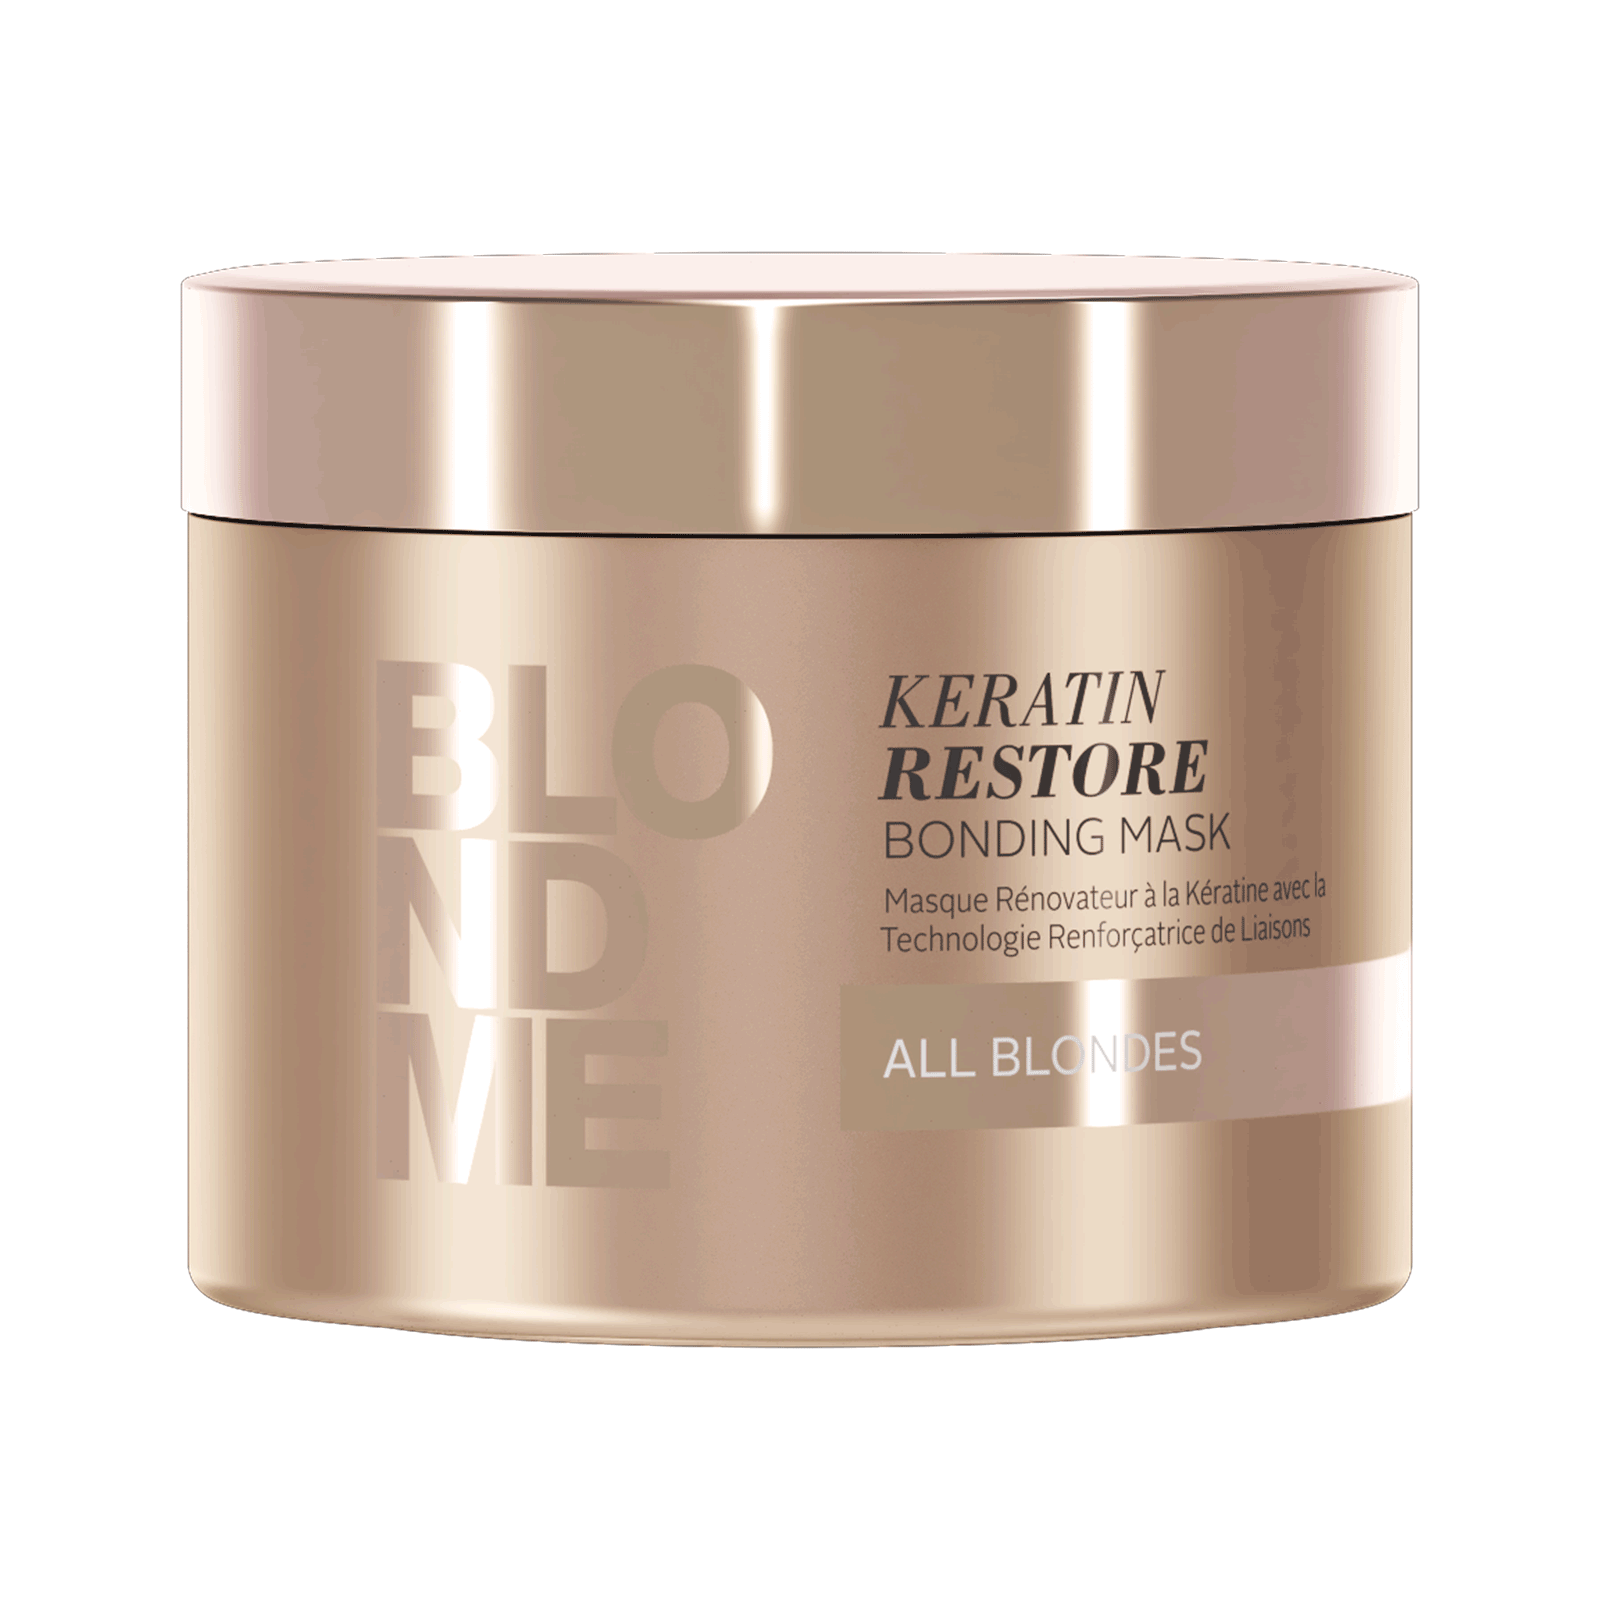 BlondMe - Keratin Restore Bonding Mask - All Blondes